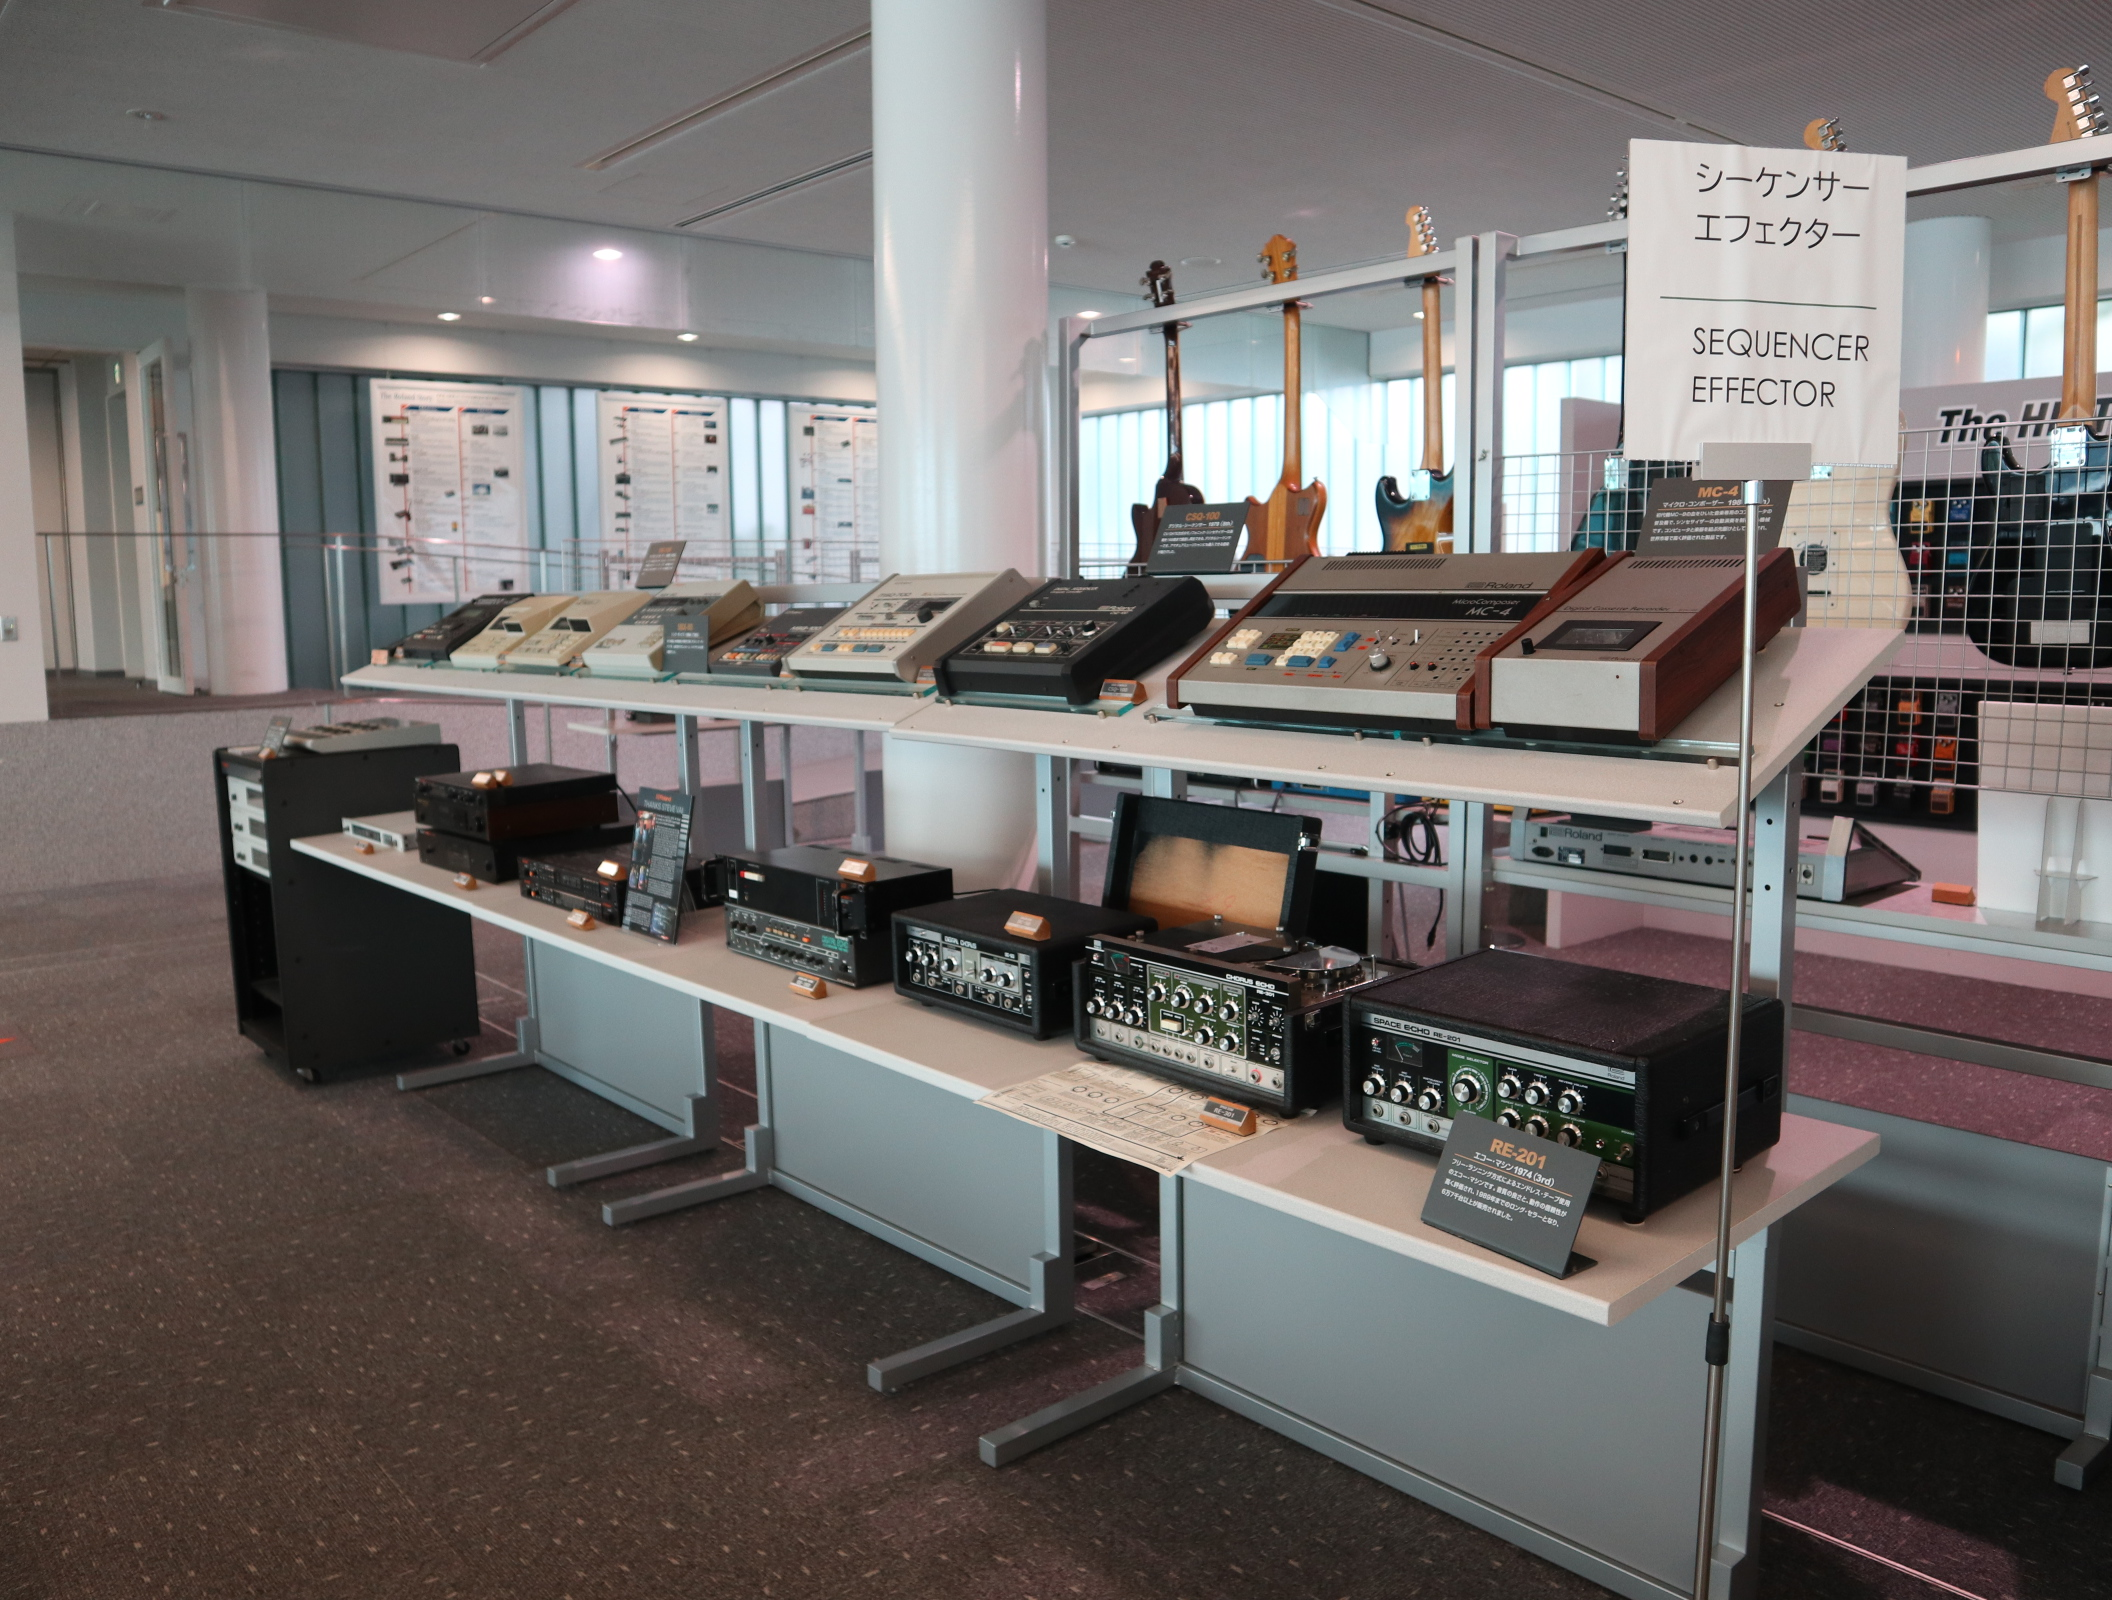 Sequencers and effects units (called 'effectors' in Japanese)